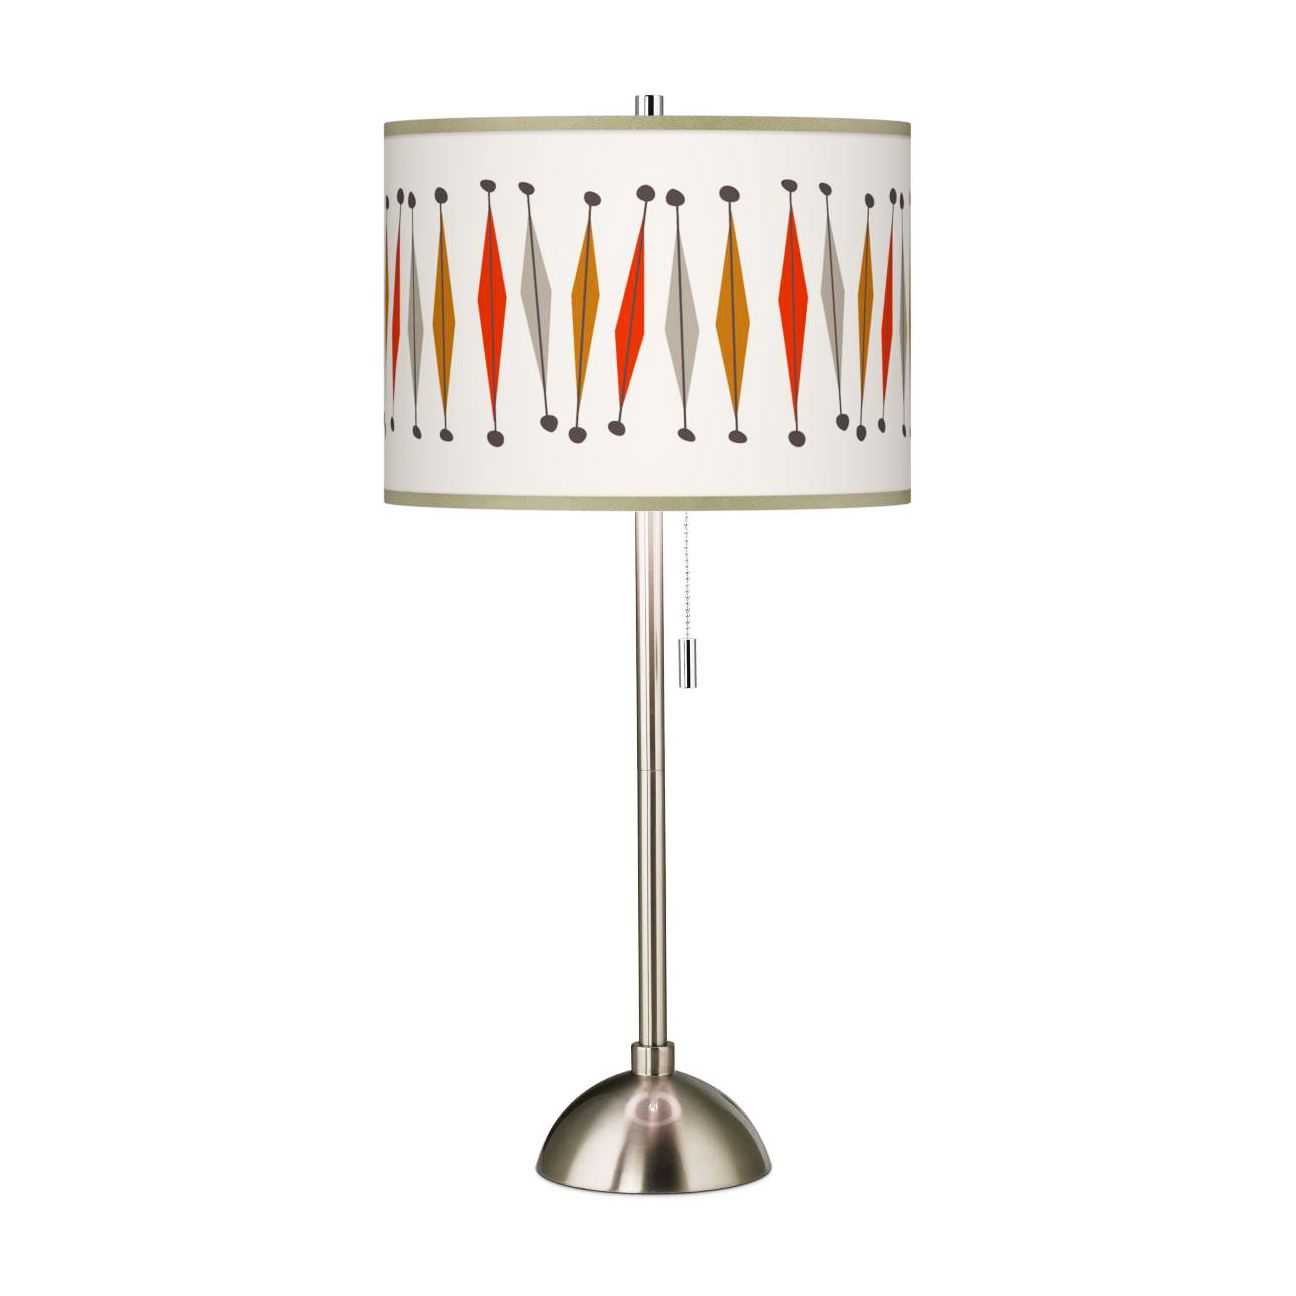 Retro table lamp dotandbo mcm pinterest retro table retro table lamp dotandbo aloadofball Choice Image